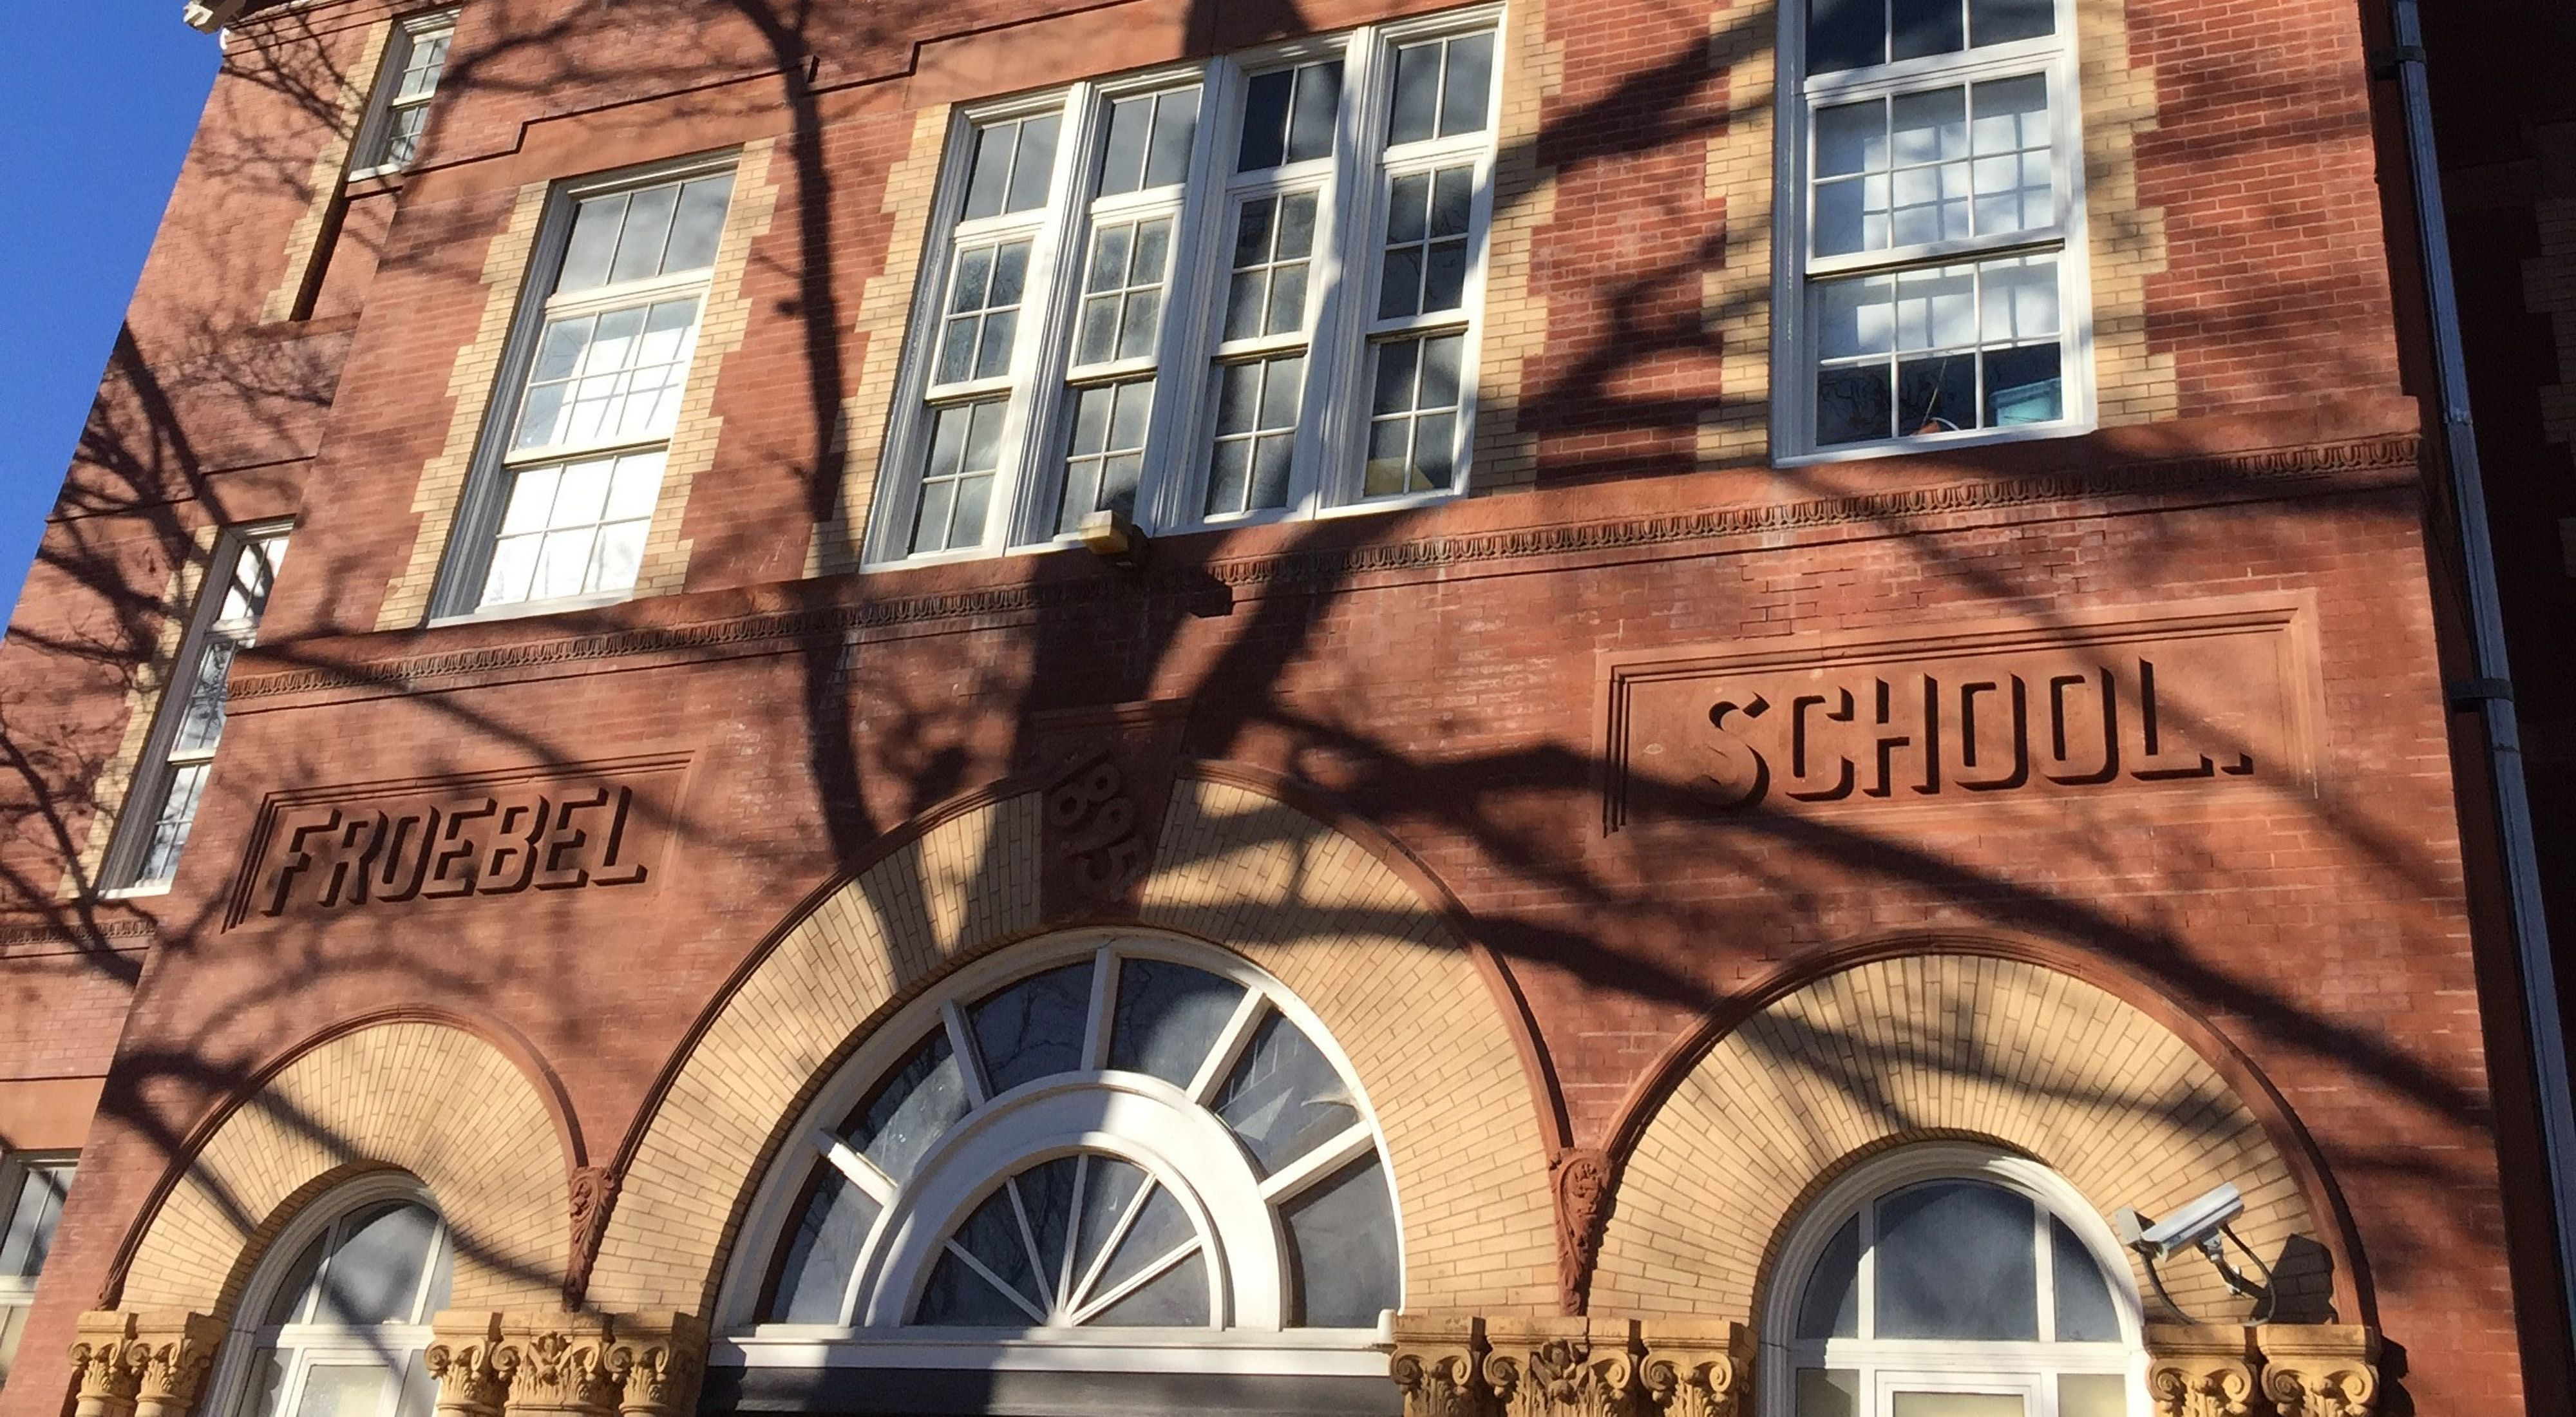 The brick facade of Froebel Literacy Academy in St. Louis, with the words Froebel School in raised lettering.